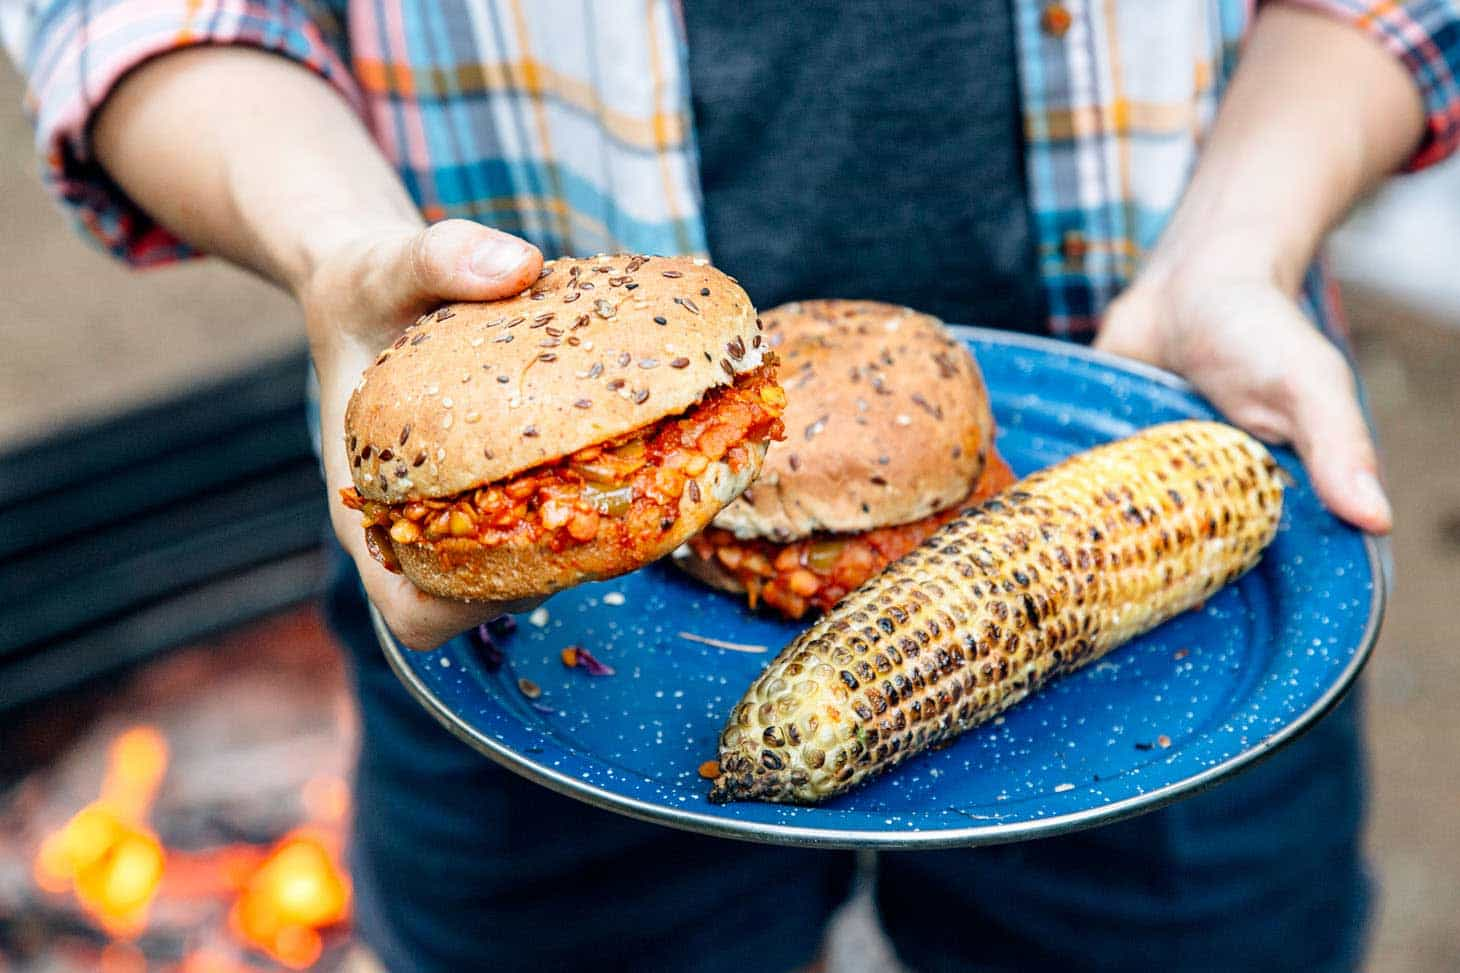 Red lentil sloppy joes on a blue camping plate with grilled corn.